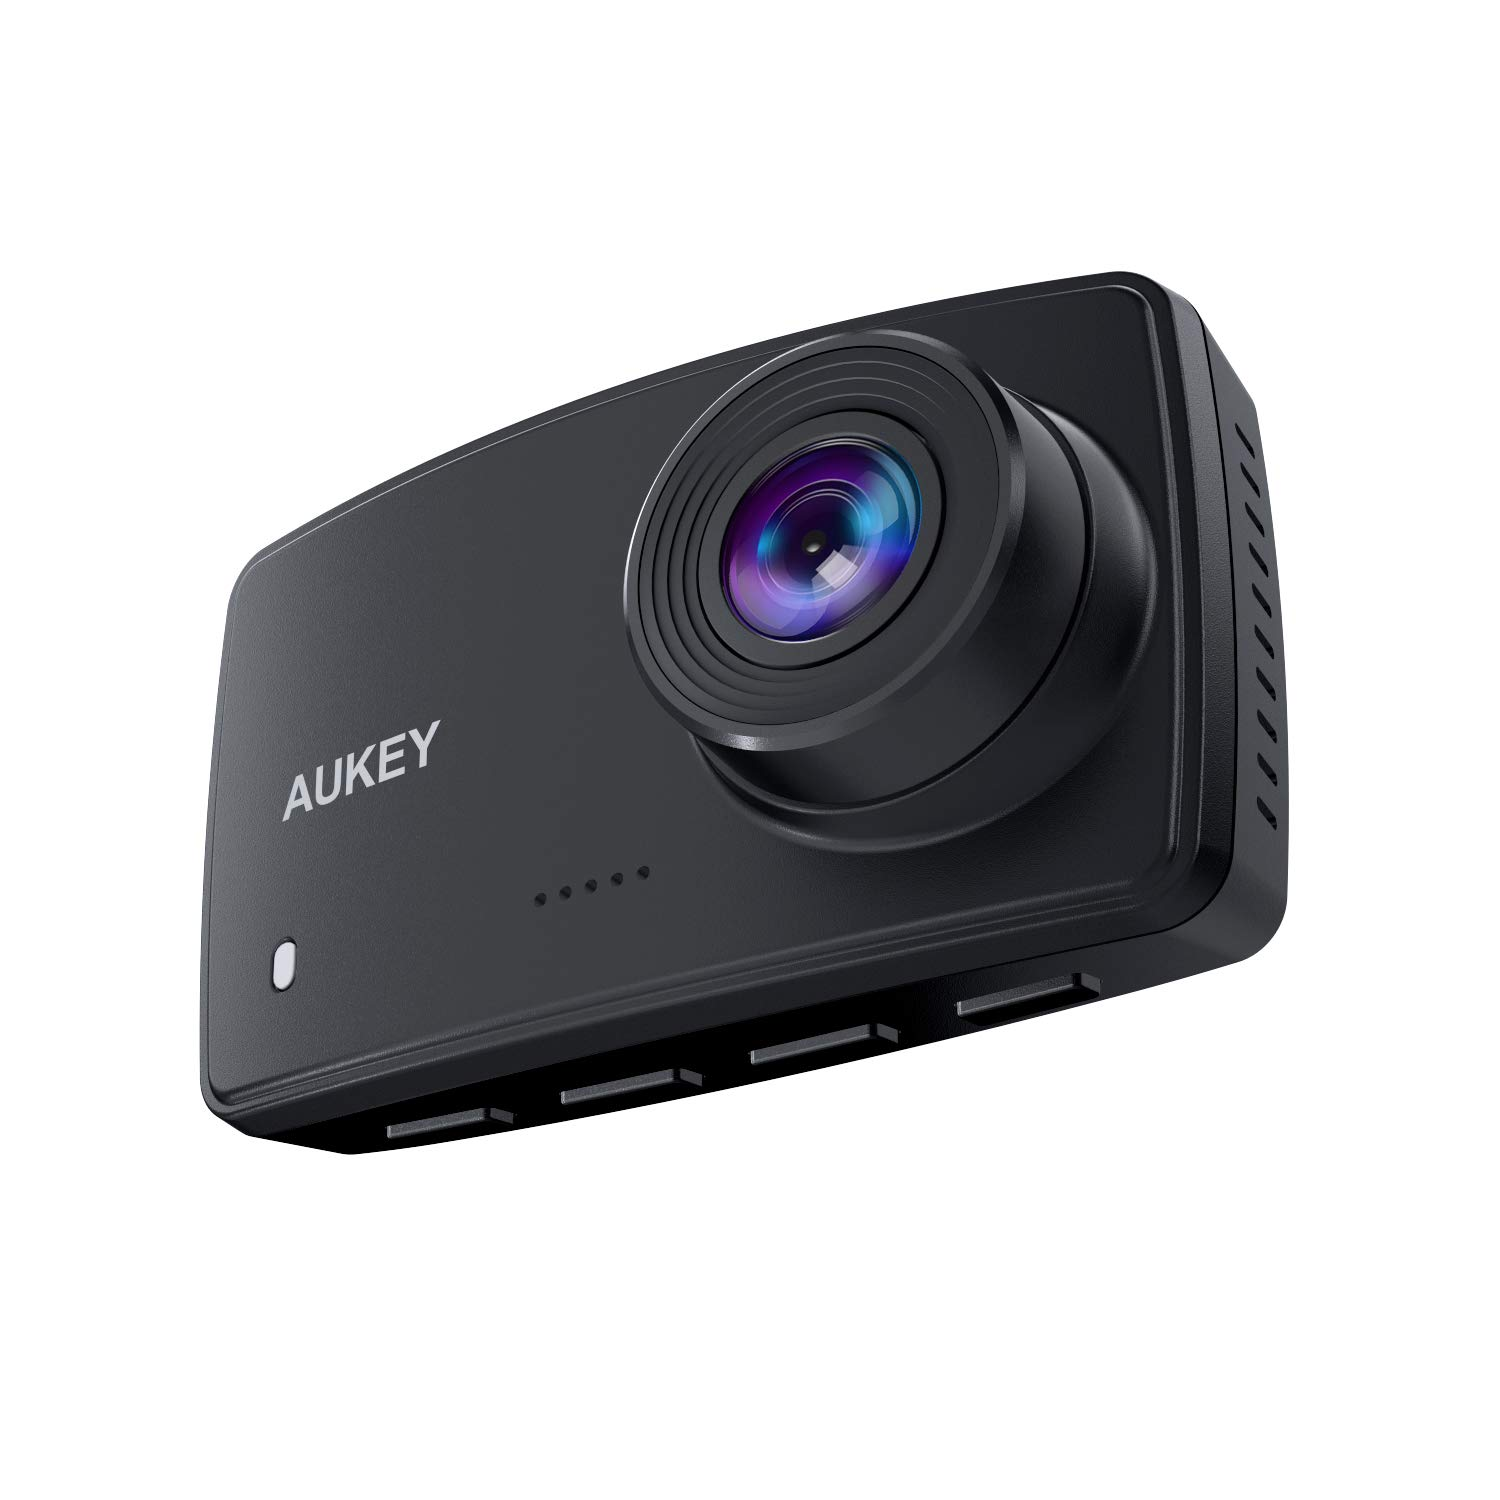 AUKEY Dash Cam FHD 1080P Car Camera 170 Degree Wide-Angle Dash Camera for Cars with Supercapacitor 2.7 Inch LCD Screen, WDR, G-Sensor, Loop Recording, Motion Detection, Support 128GB MAX Grey